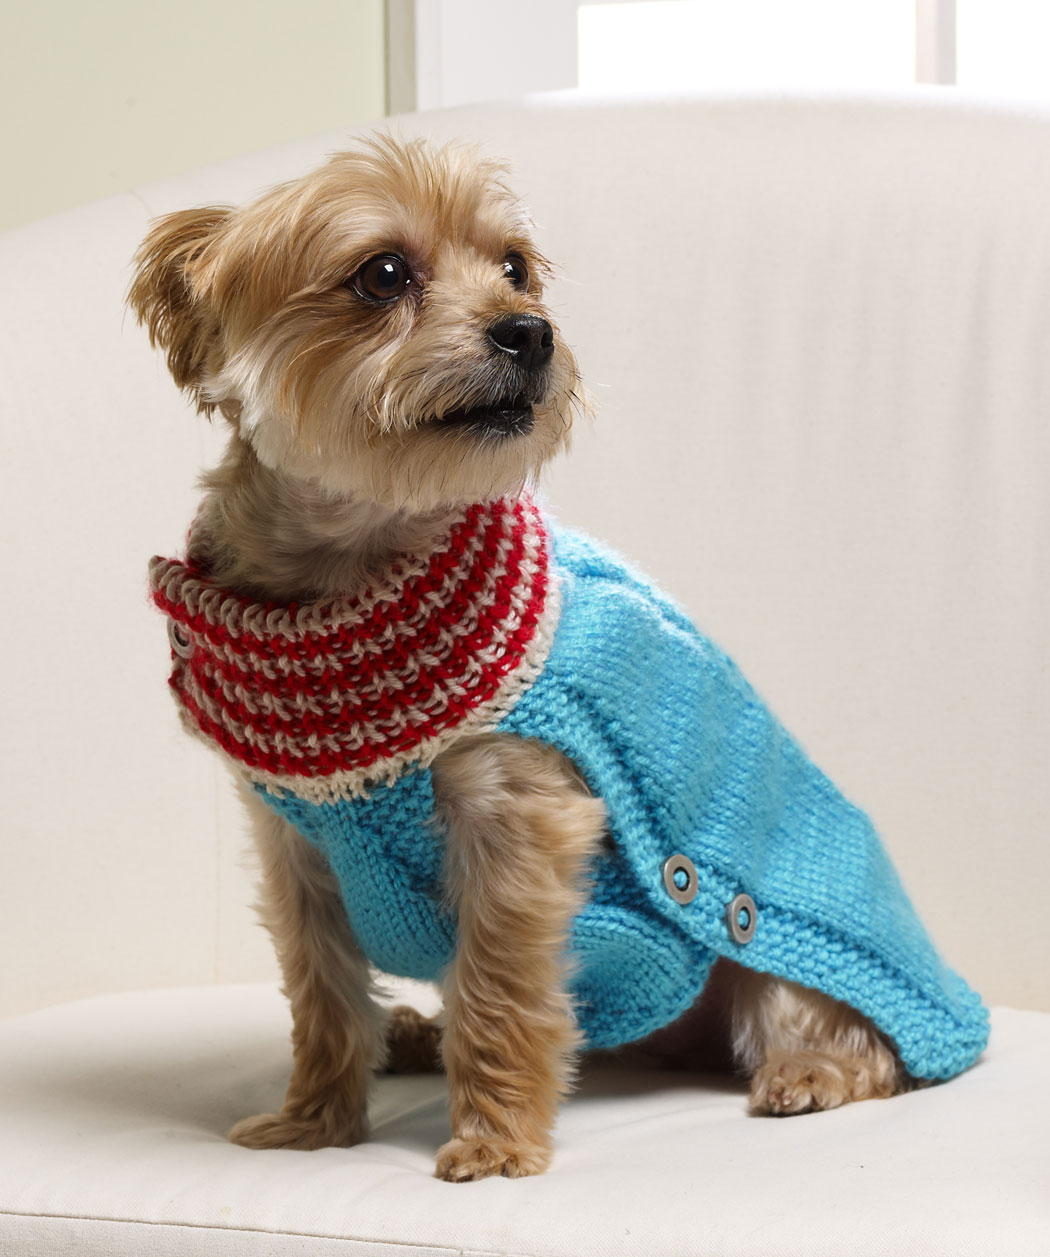 Knitted Dog Sweater Patterns Free : Dog Sweater Knitting Pattern A Knitting Blog